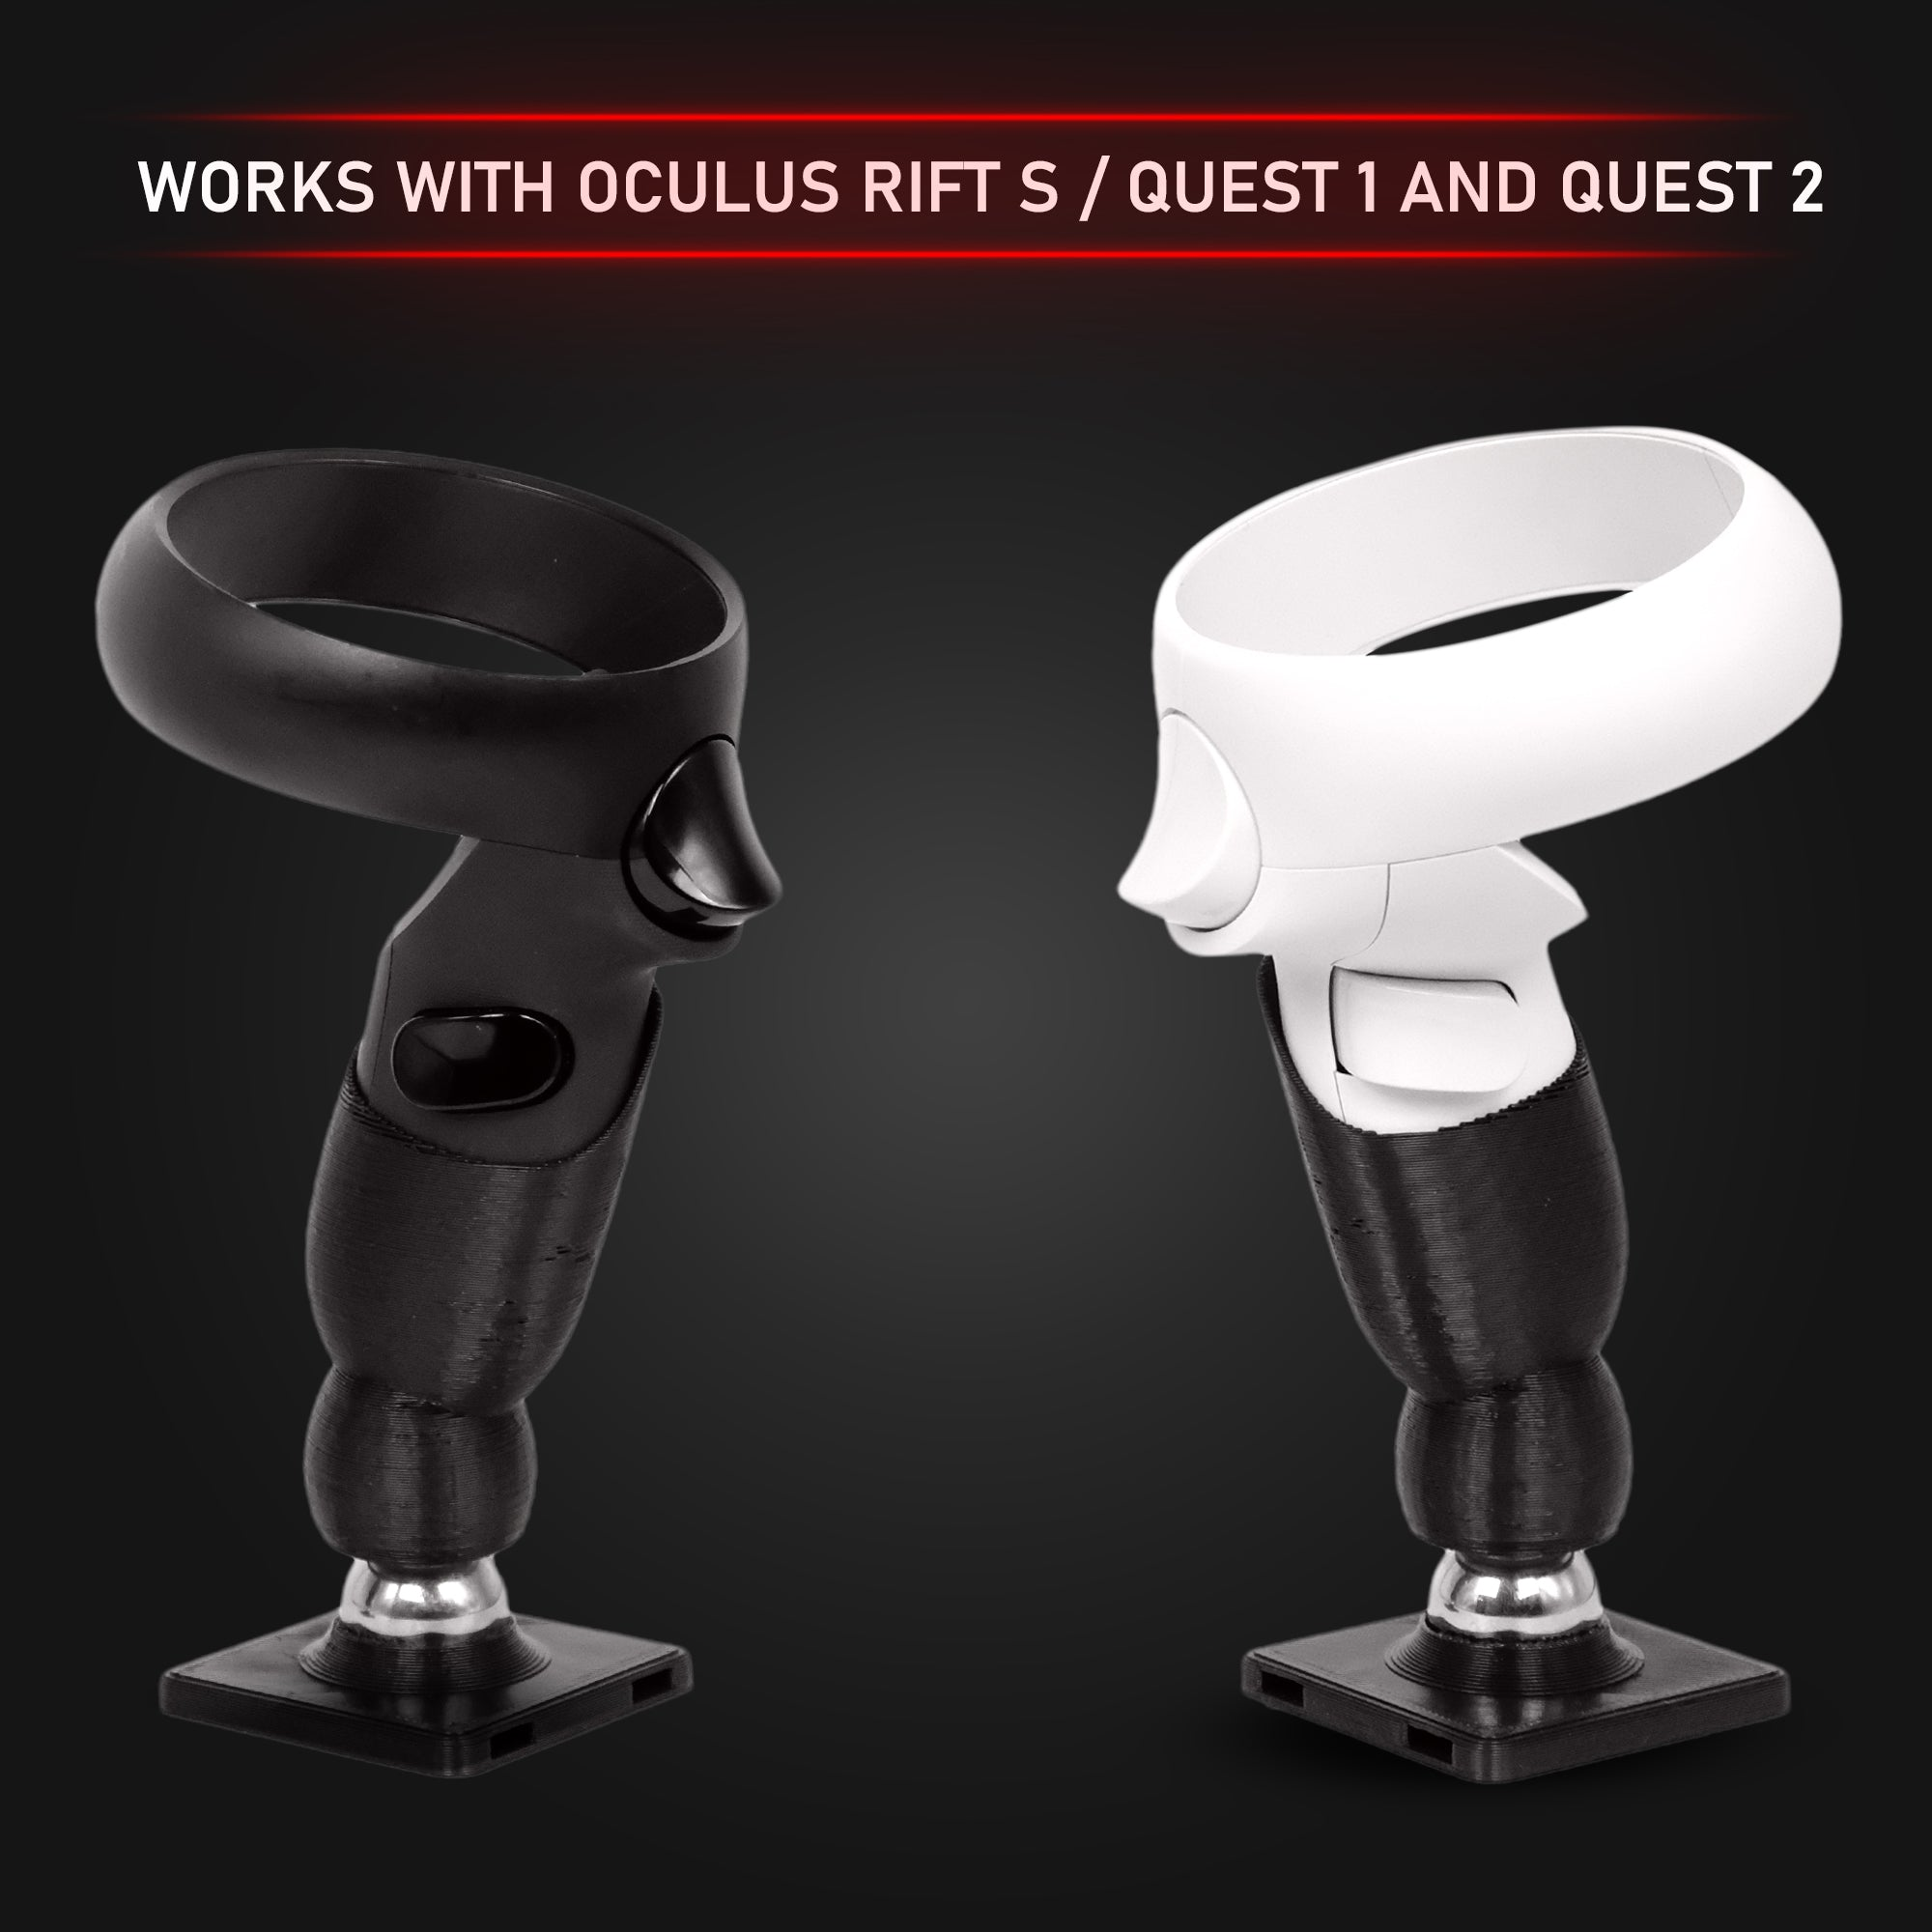 Advanced Flight Stick - Magnetic Detachable Flight Stick for the Oculus Rift S / Quest